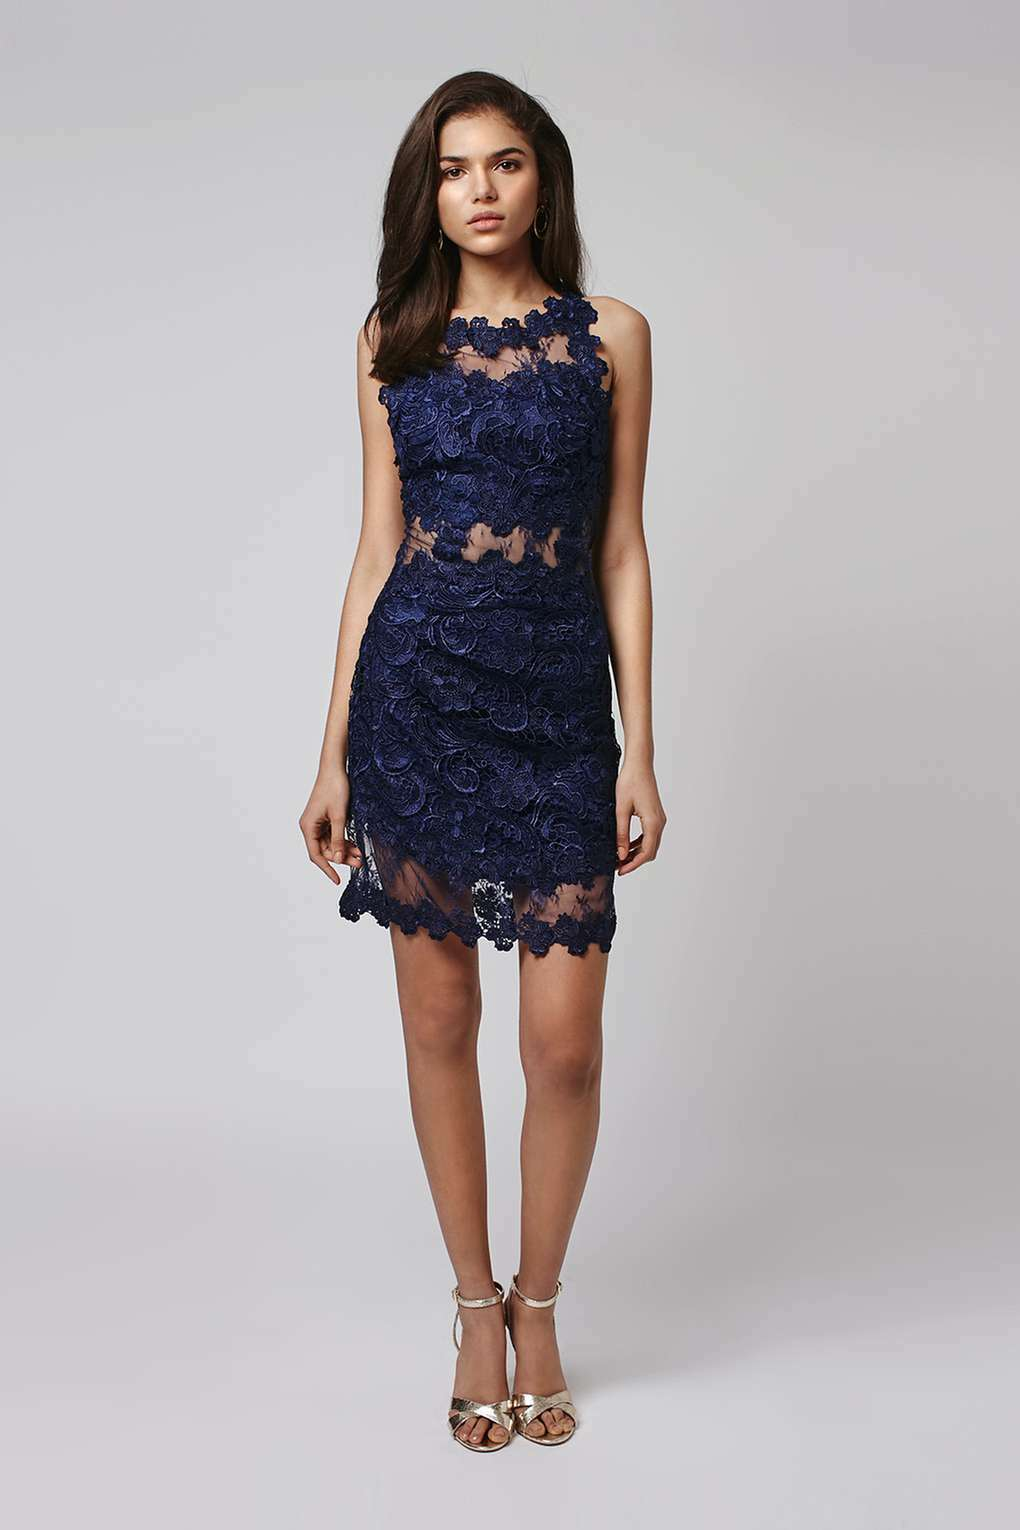 TOPSHOP Strappy Lace Body-Con Dress (size 8)